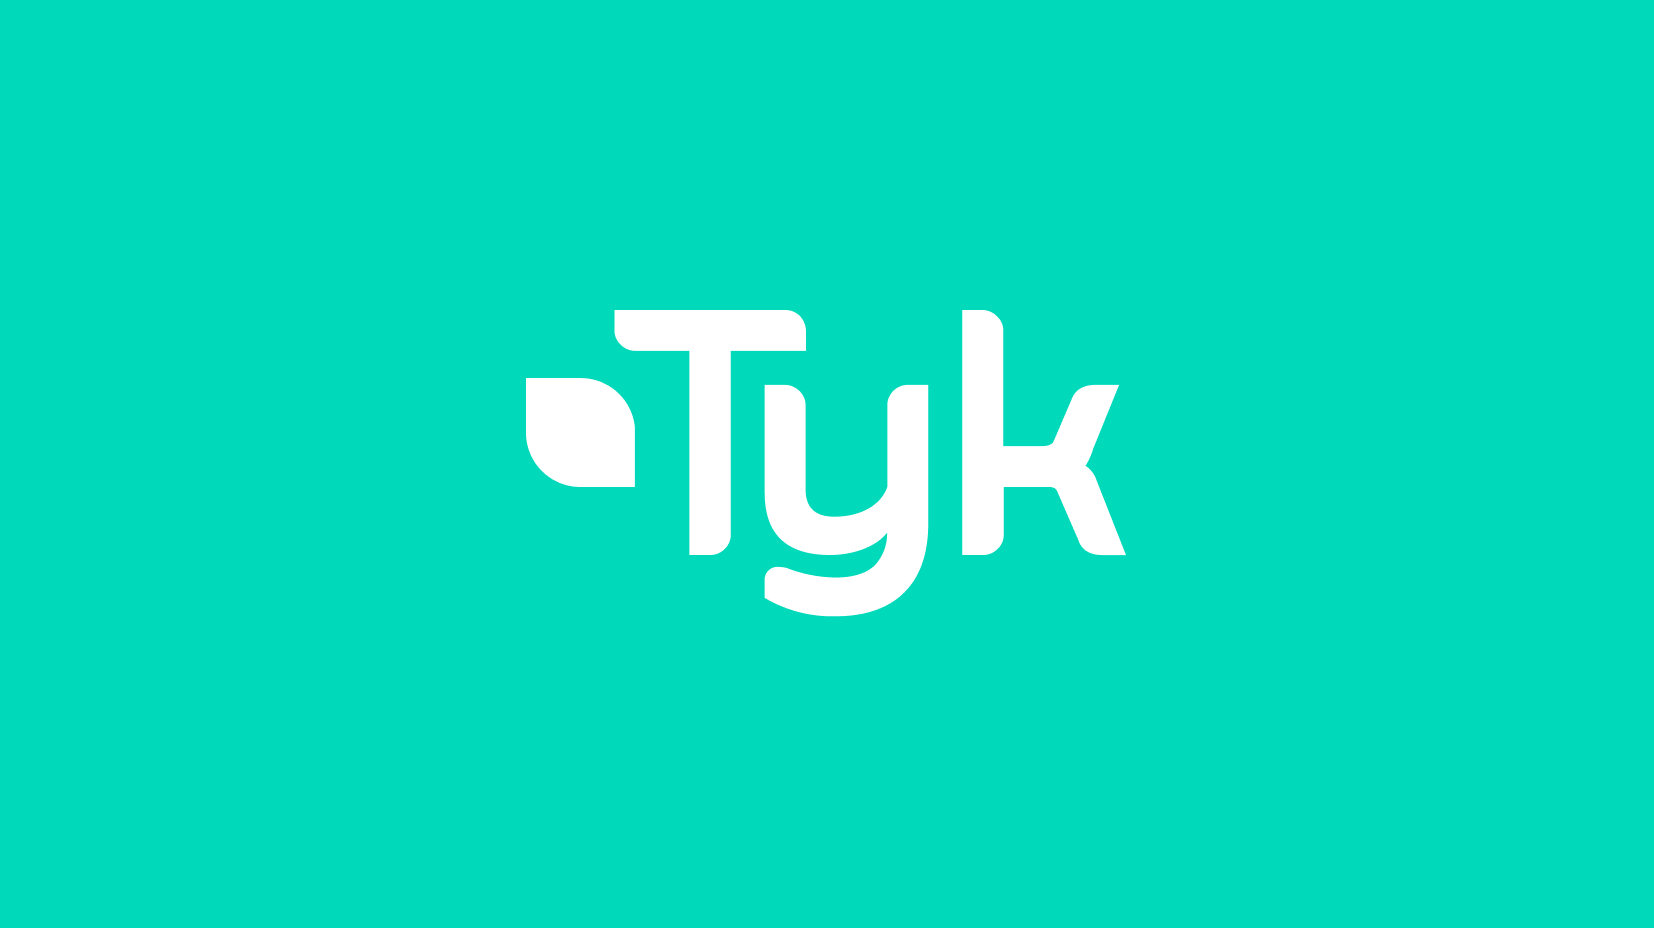 Tech & Product DD | Growth | Code & Co. advises Scottish Equity Partners on Tyk Technologies